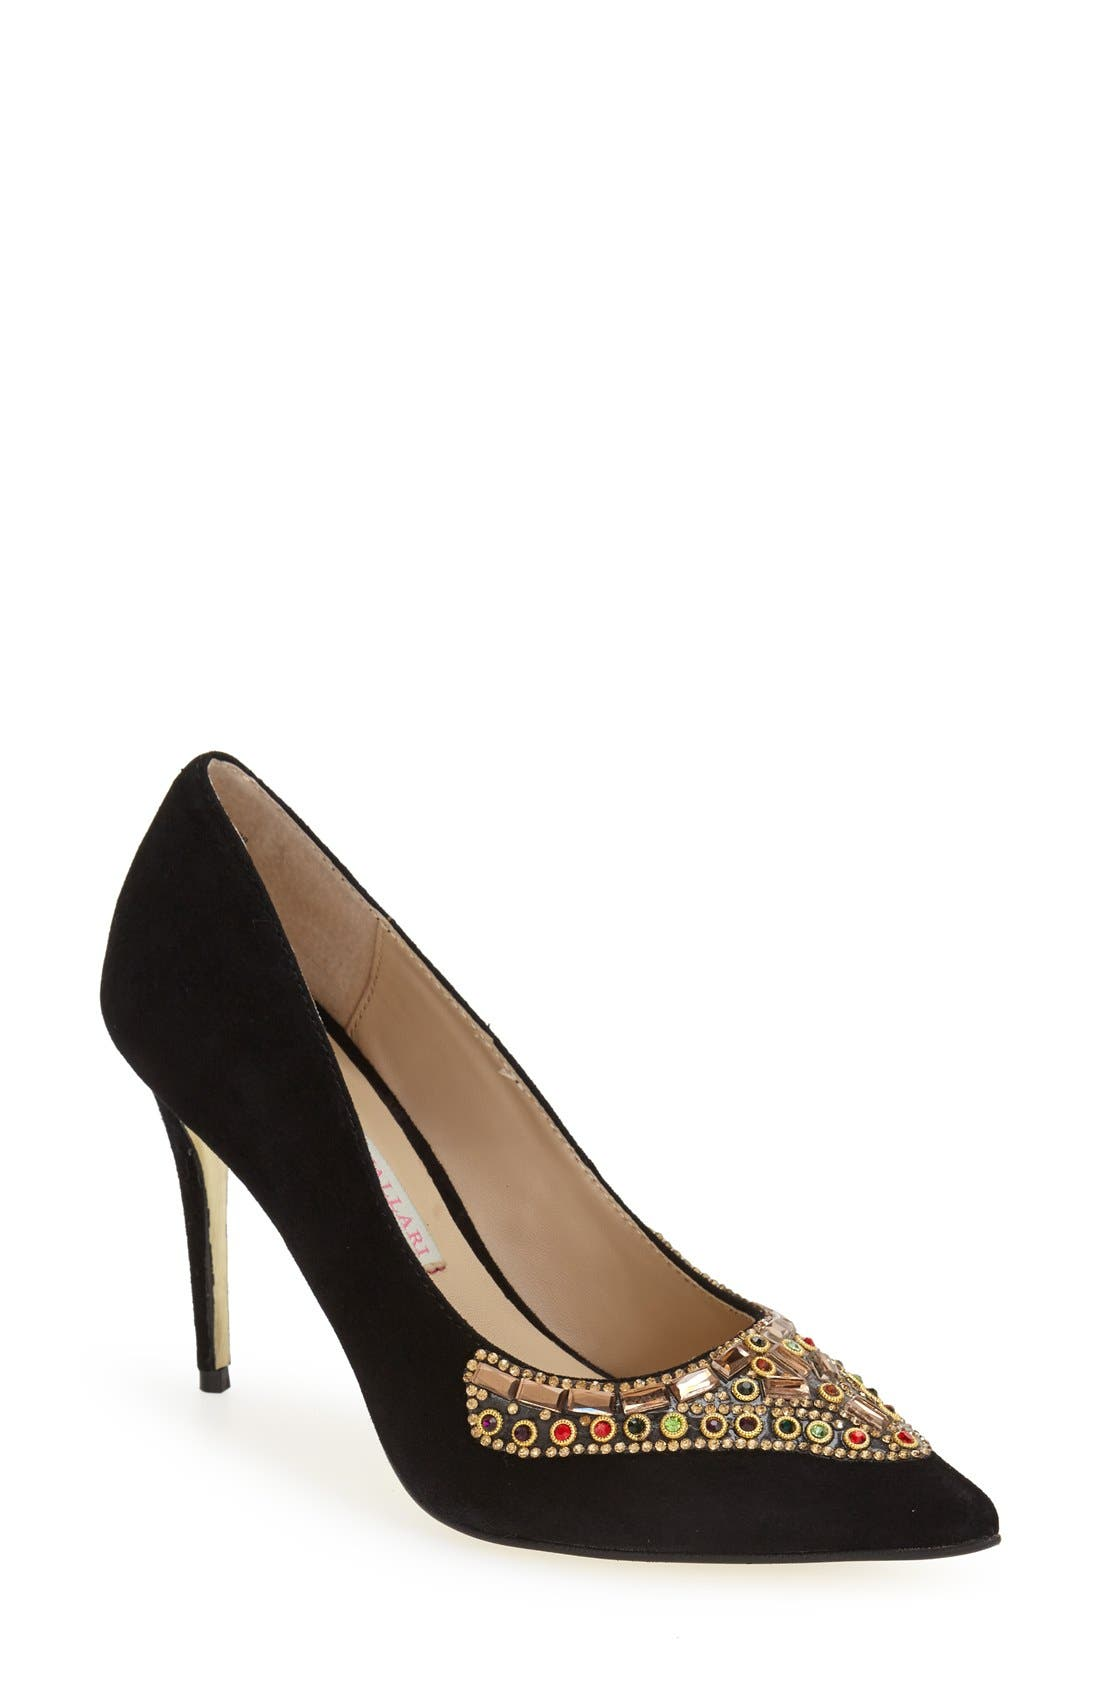 Kristin Cavallari 'Dani' Embellished Pointy Toe Pump (Women)